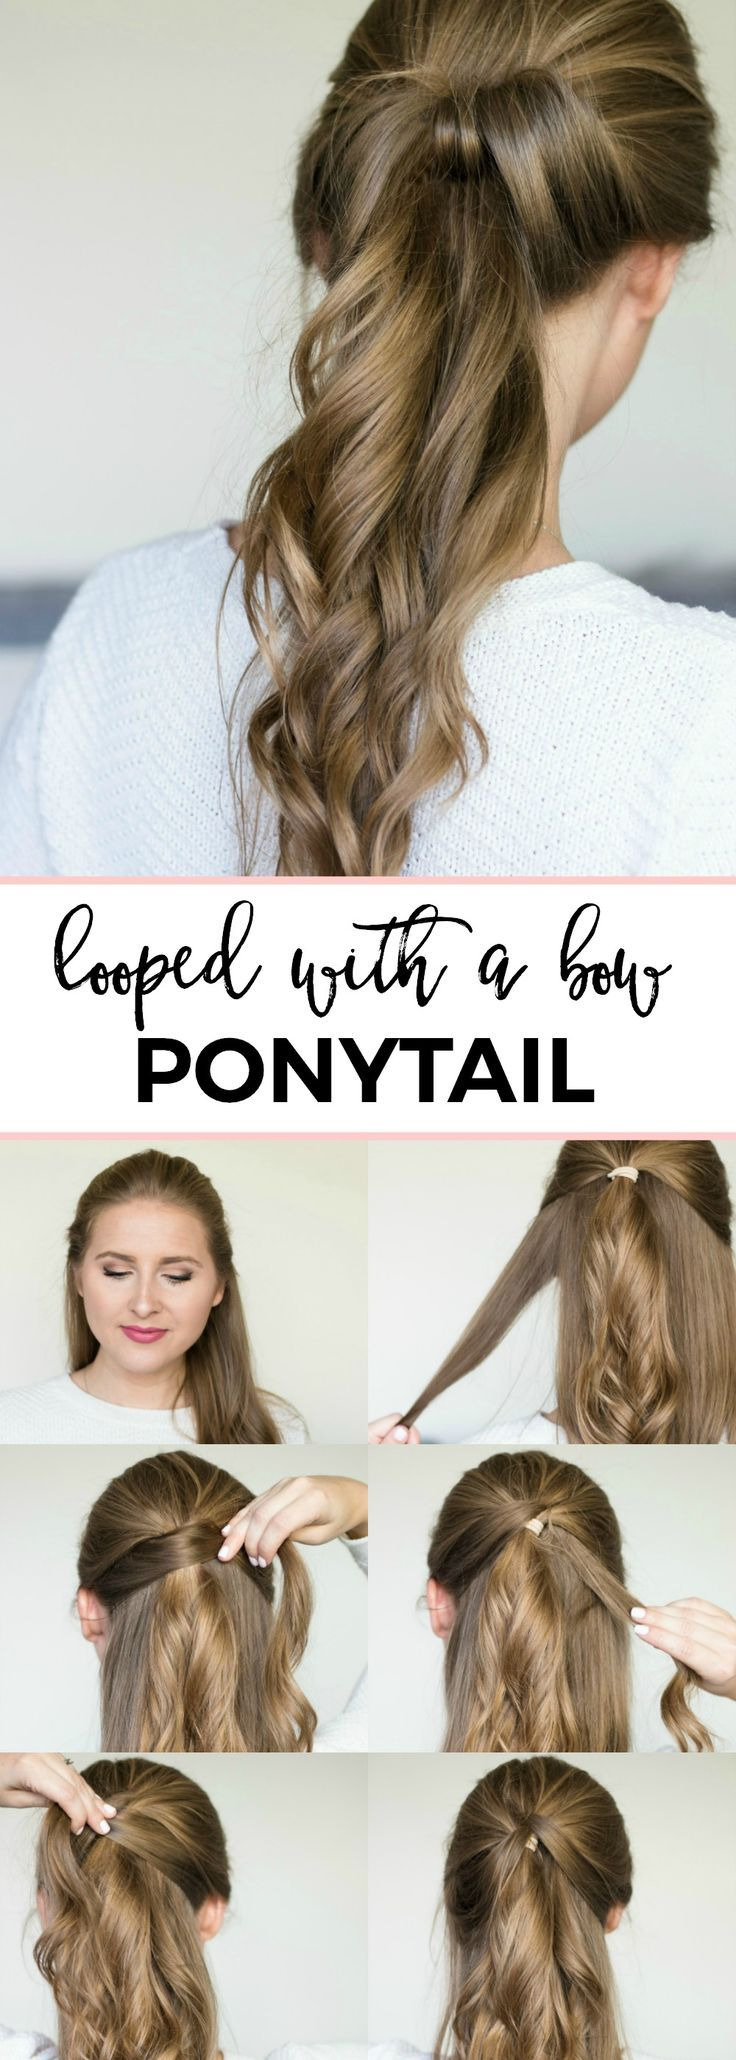 25+ Best Ideas About Cute Hairstyles On Pinterest